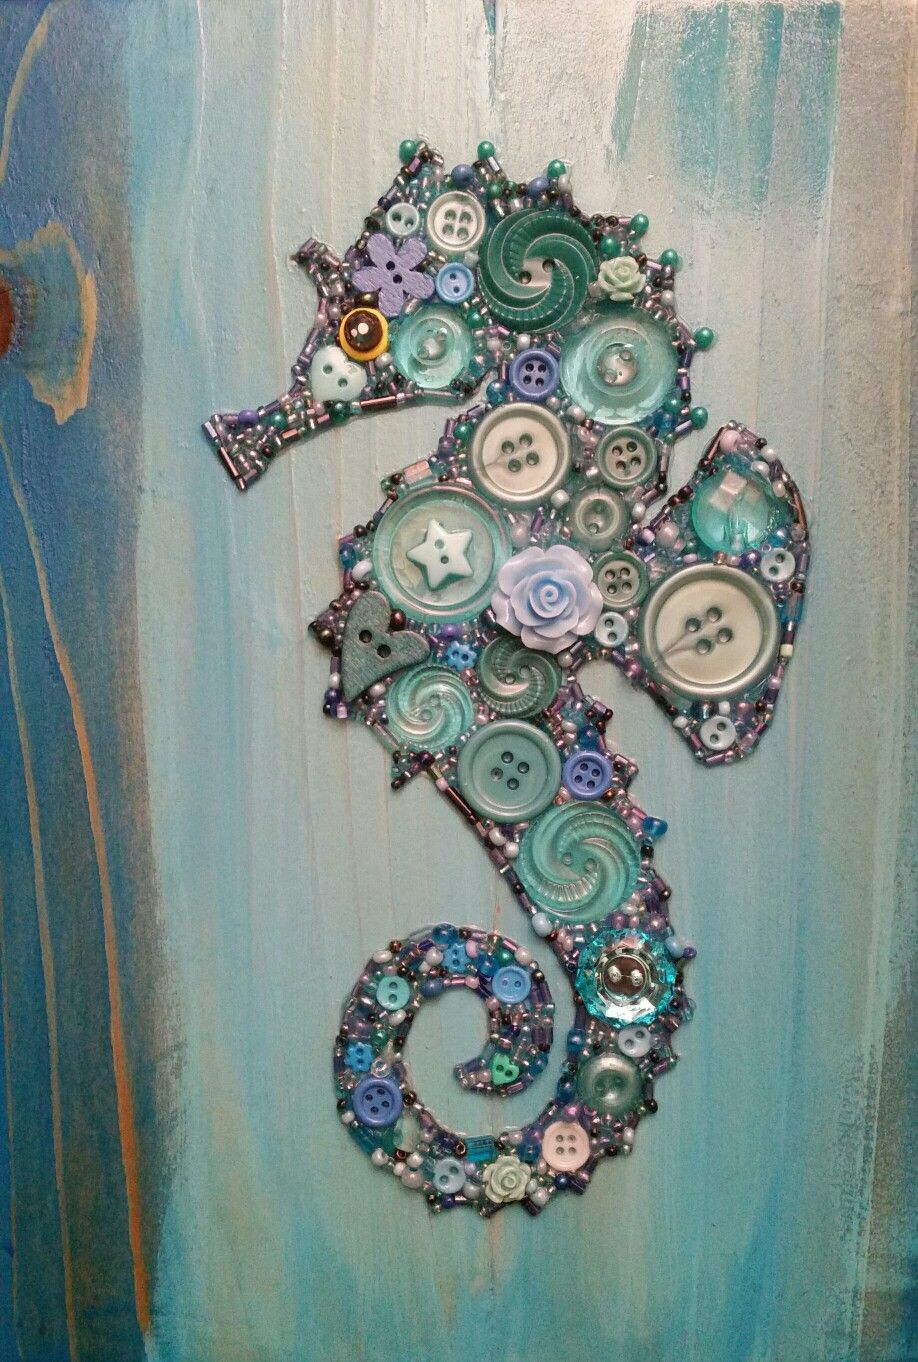 Button Art Seahorse on Recycled Wood with Acrylic Paint Background #button #art #seahorse #recycledart